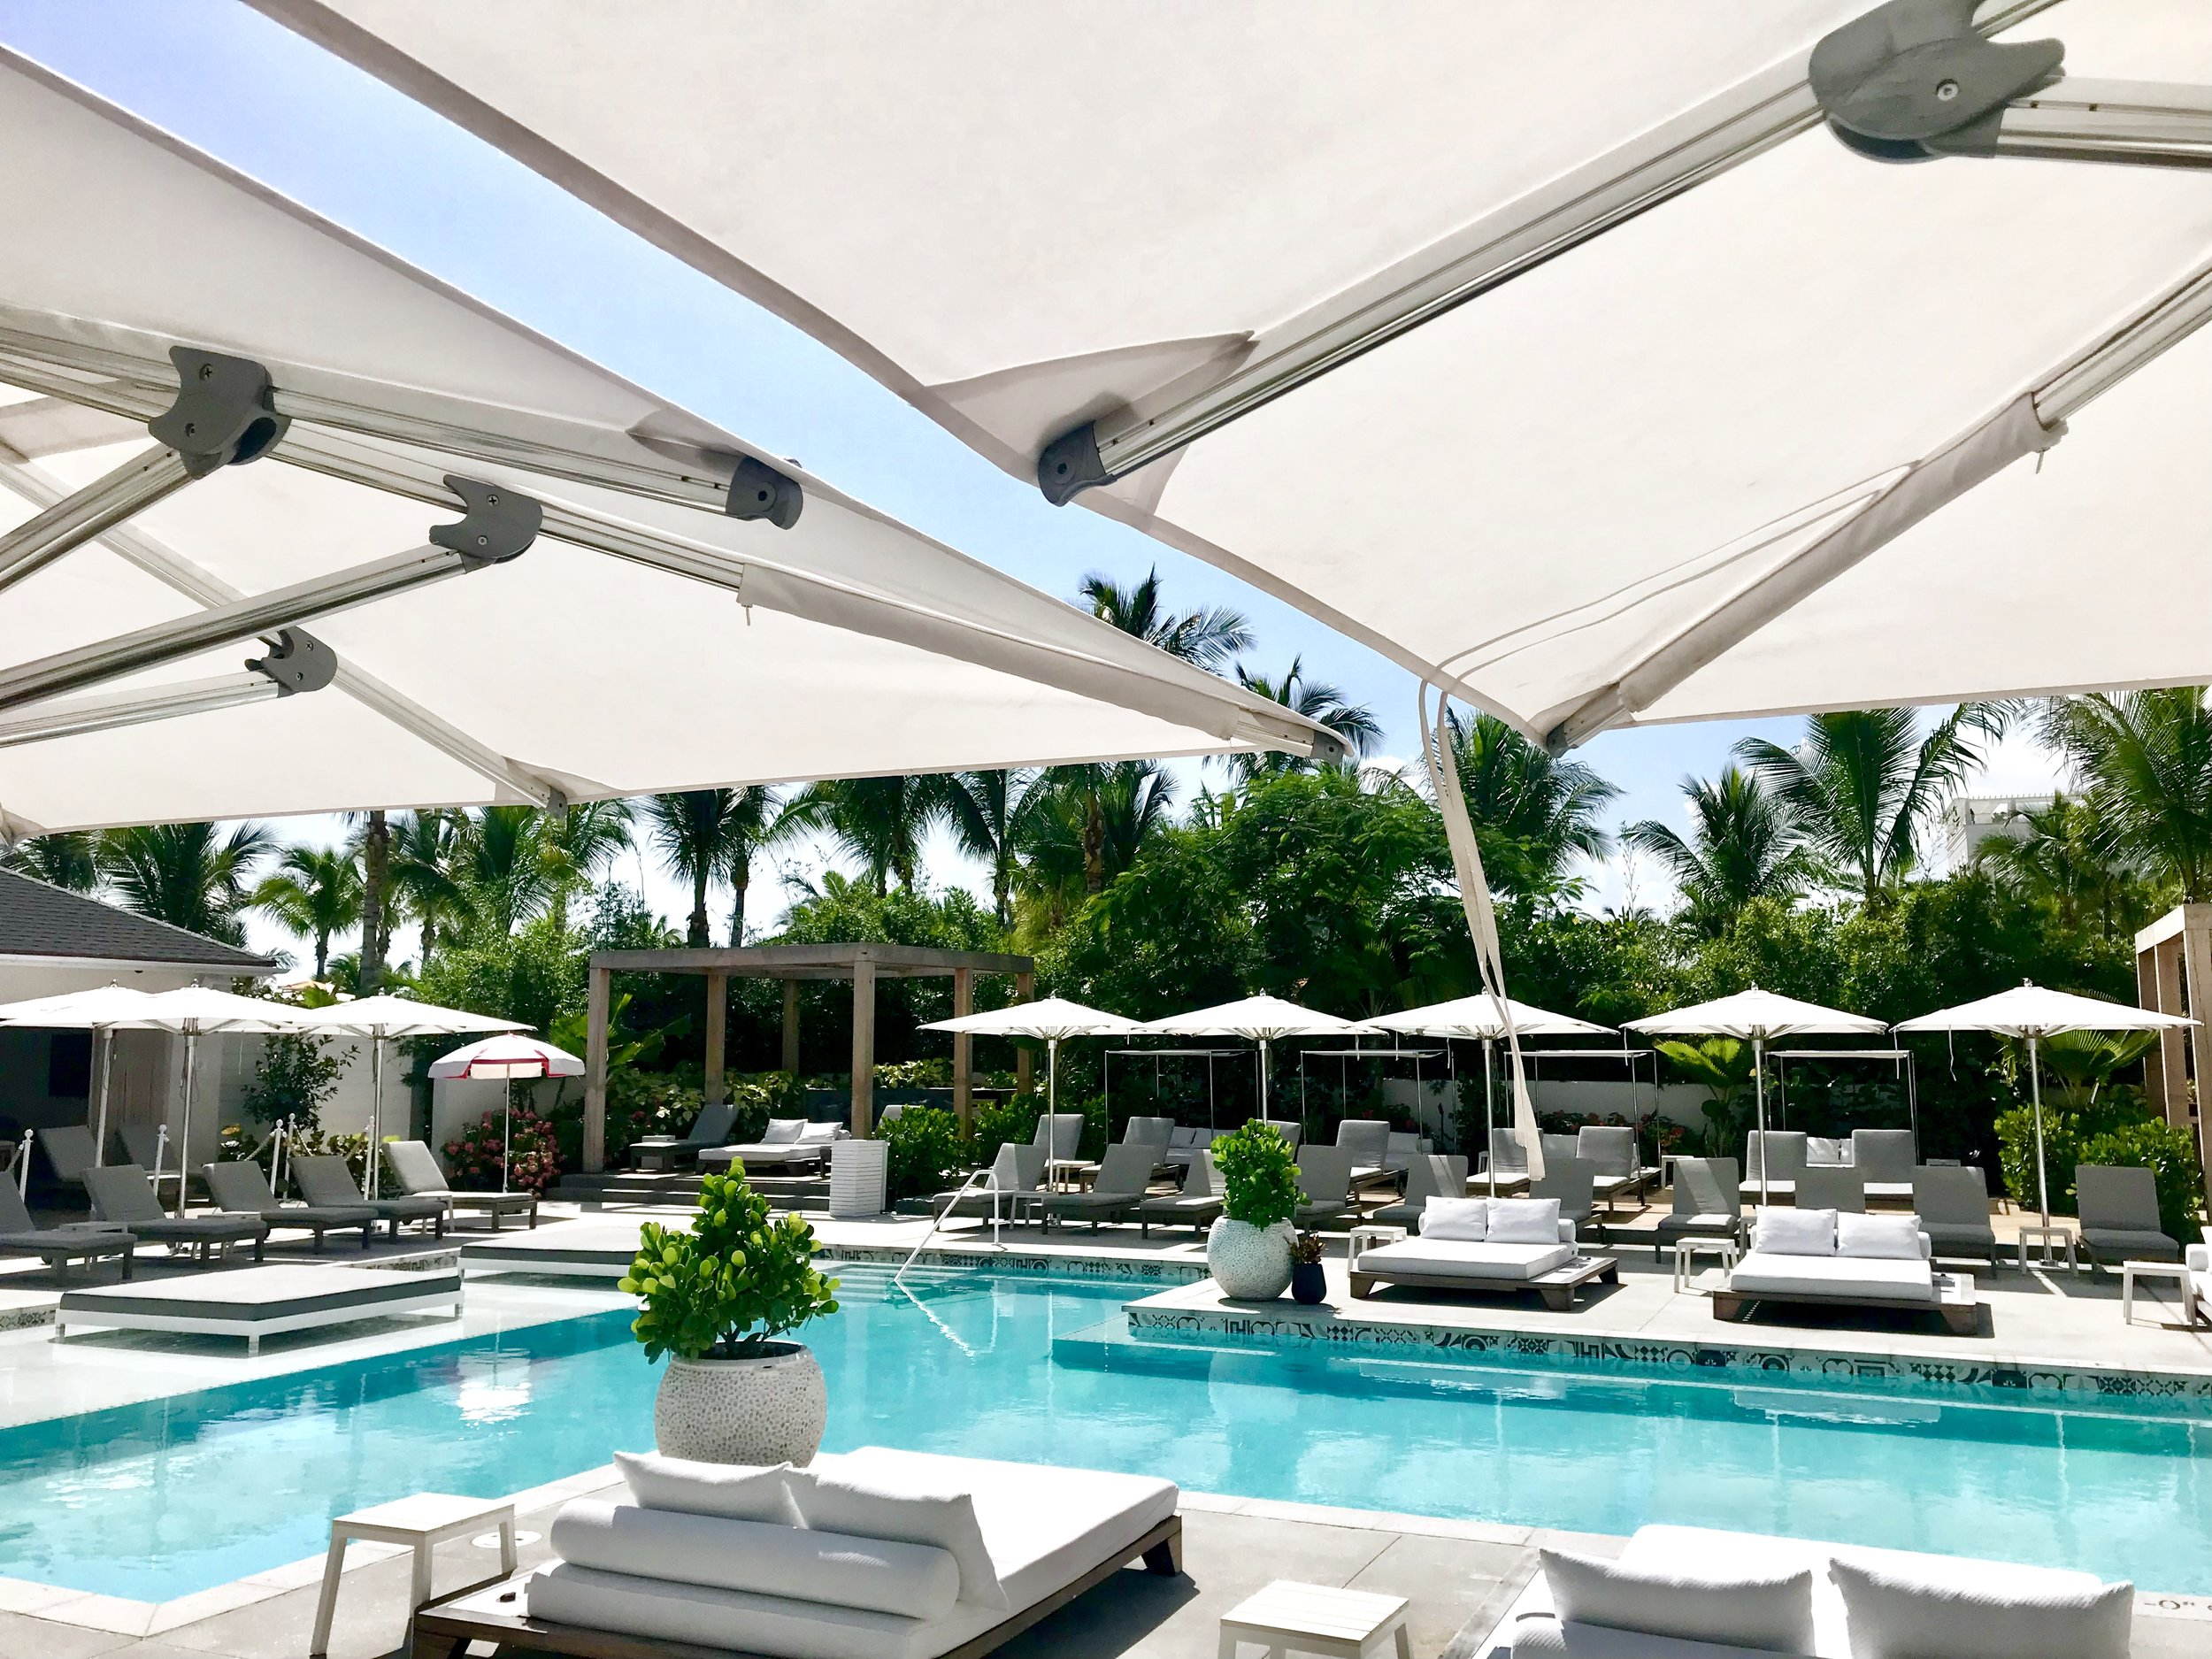 A poolside view of Privilege Pool at the SLS Baha Mar.